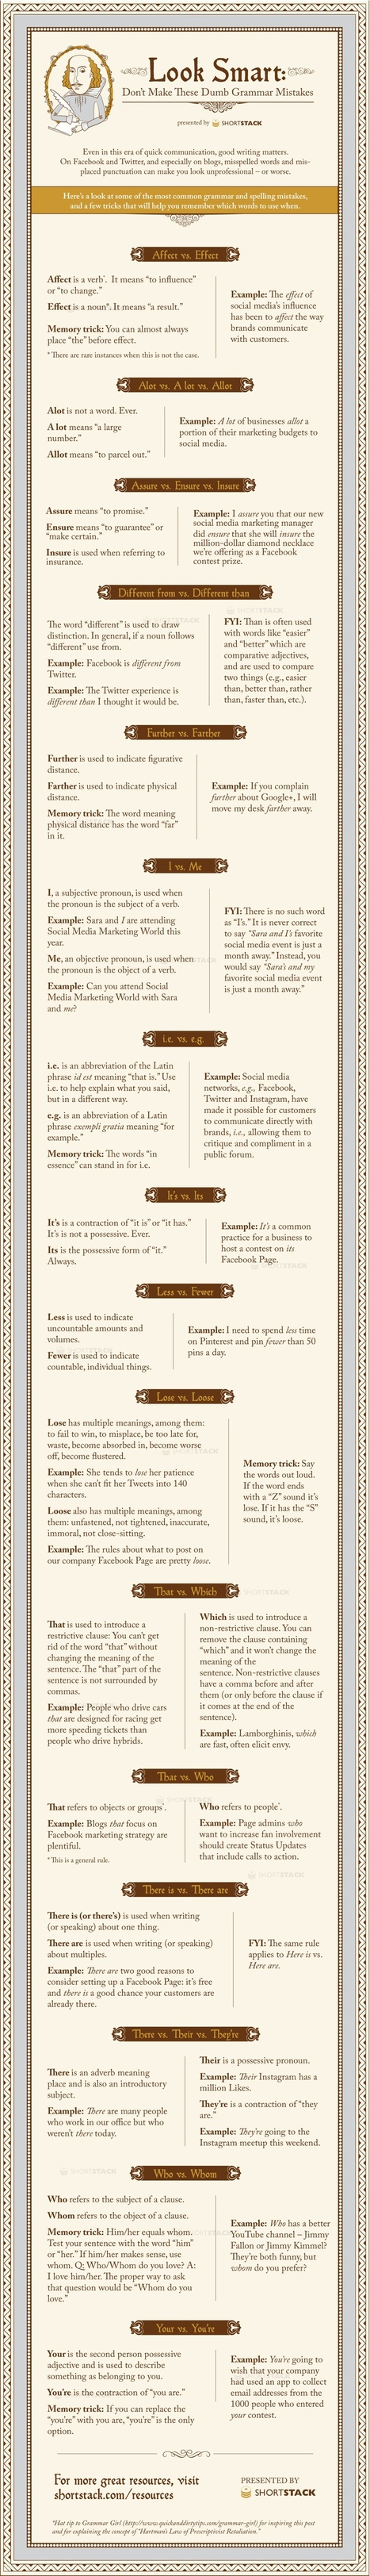 Look Smart: Don't Make these Dumb Writing Mistakes! - Infographic | Training and development | Scoop.it